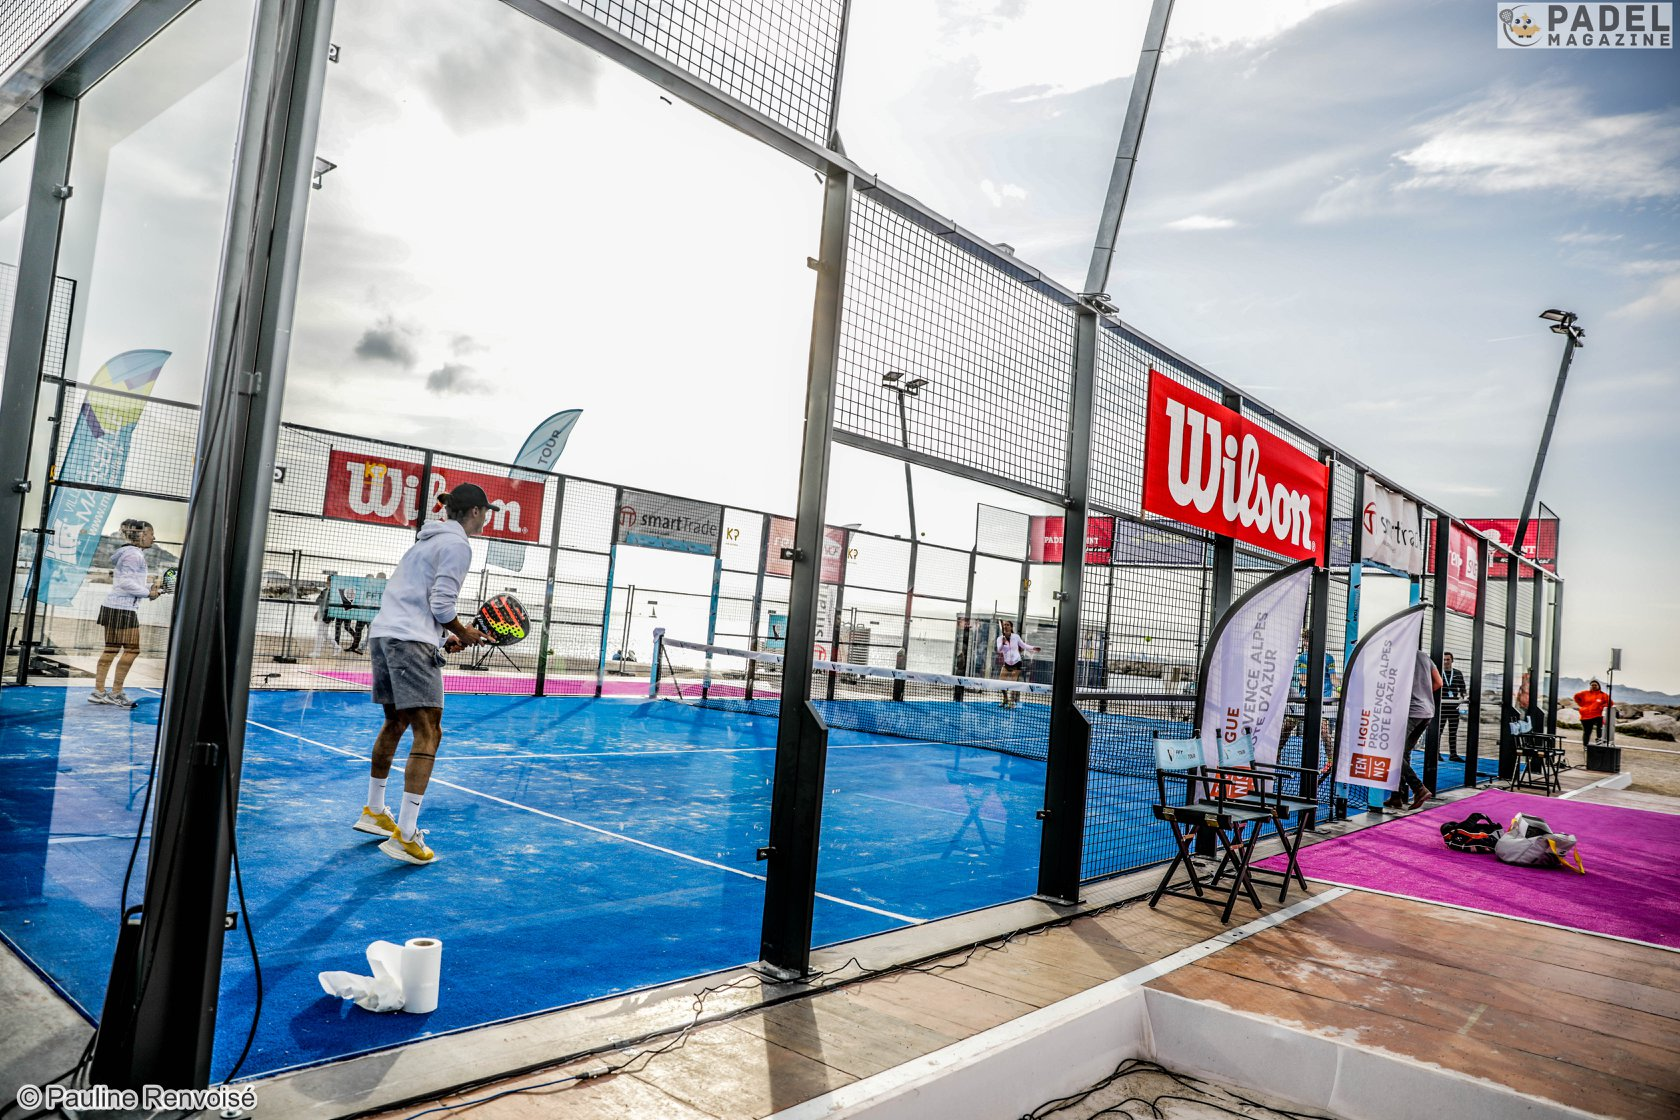 FFT PADEL TOUR 2020 : Une seconde édition ELITE +